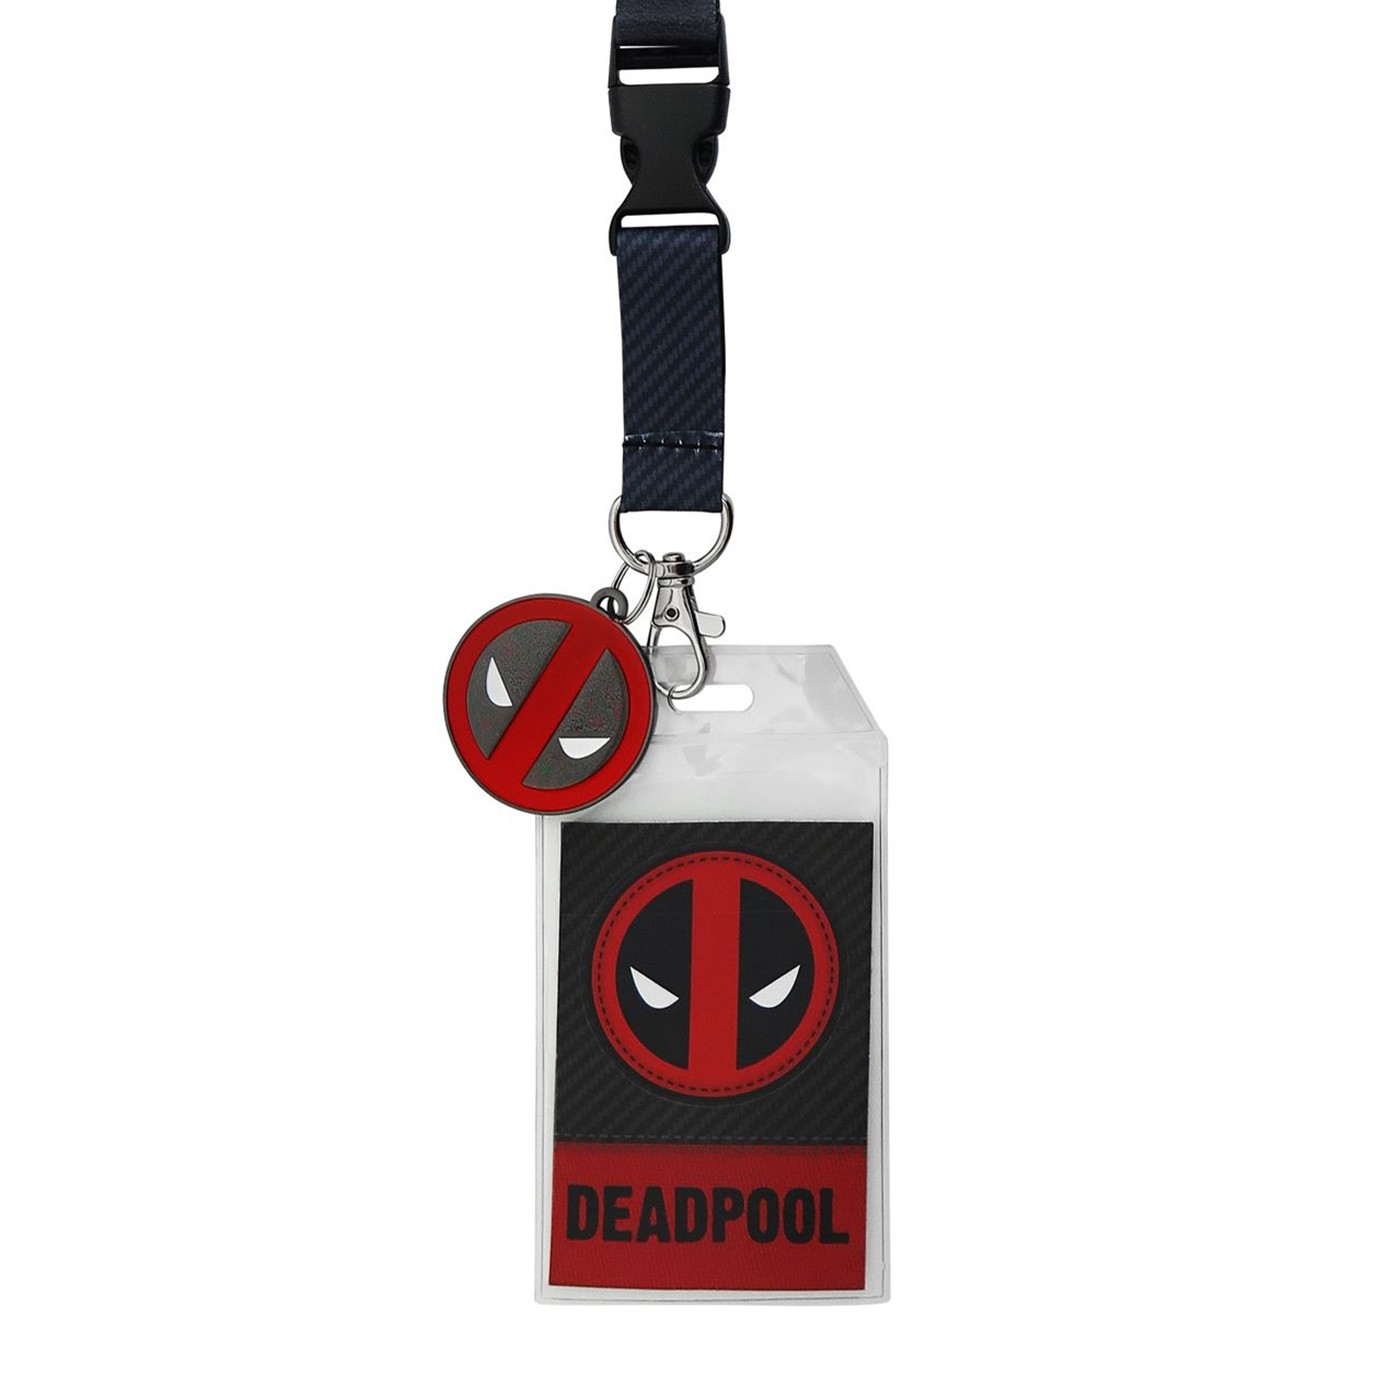 Deadpool Suit Up Lanyard with Metal Charm